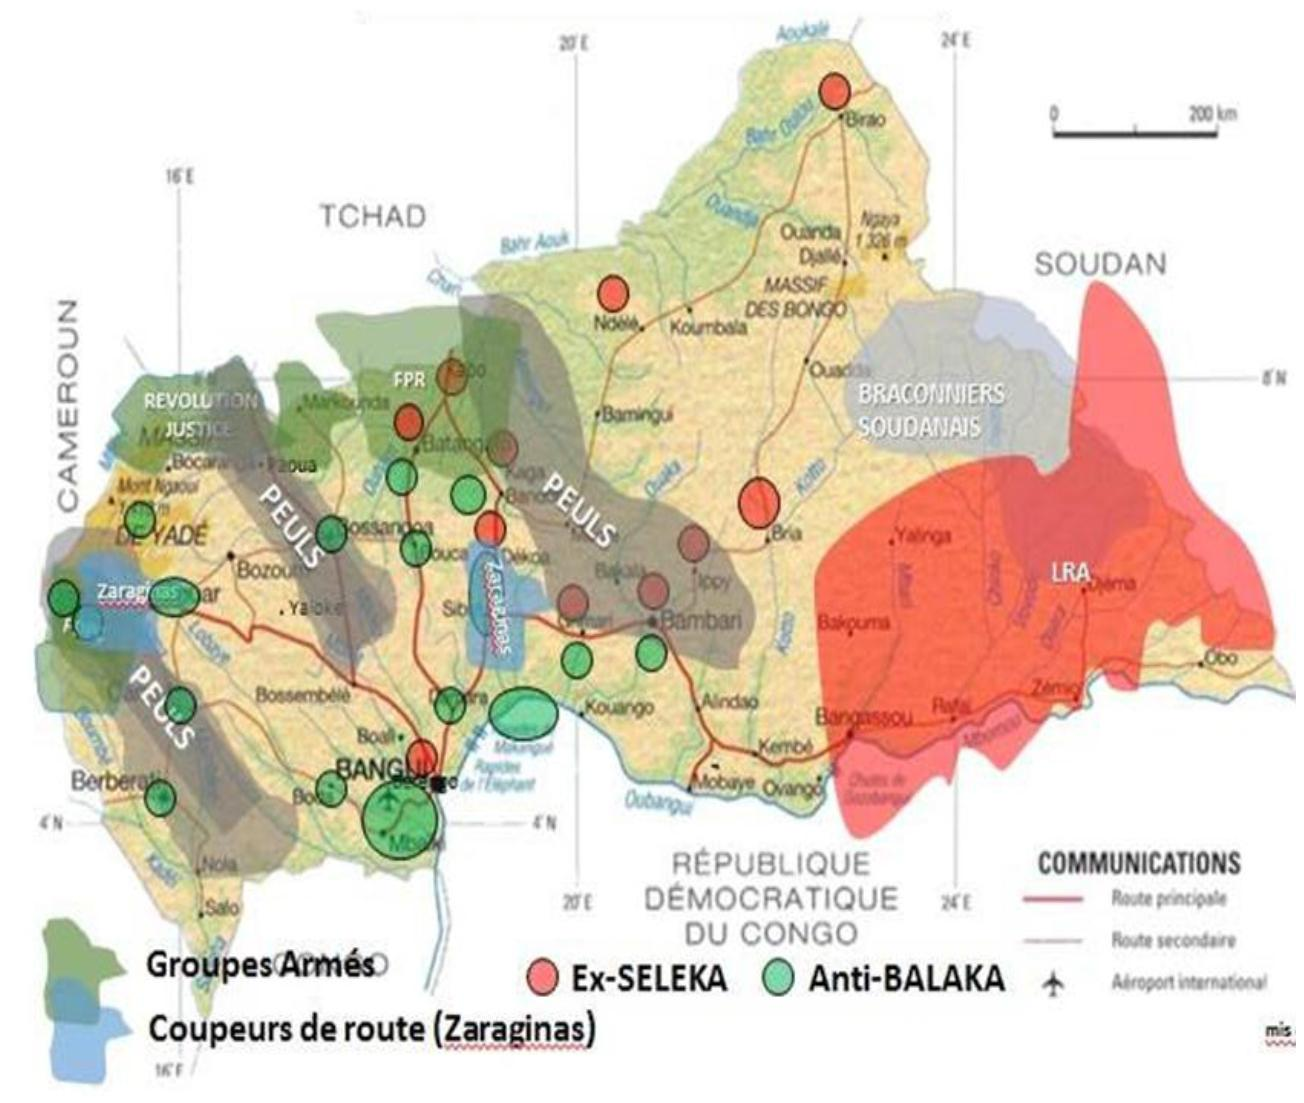 MINUSCA announces progress in offensive against the 3R armed group in northwestern RCA